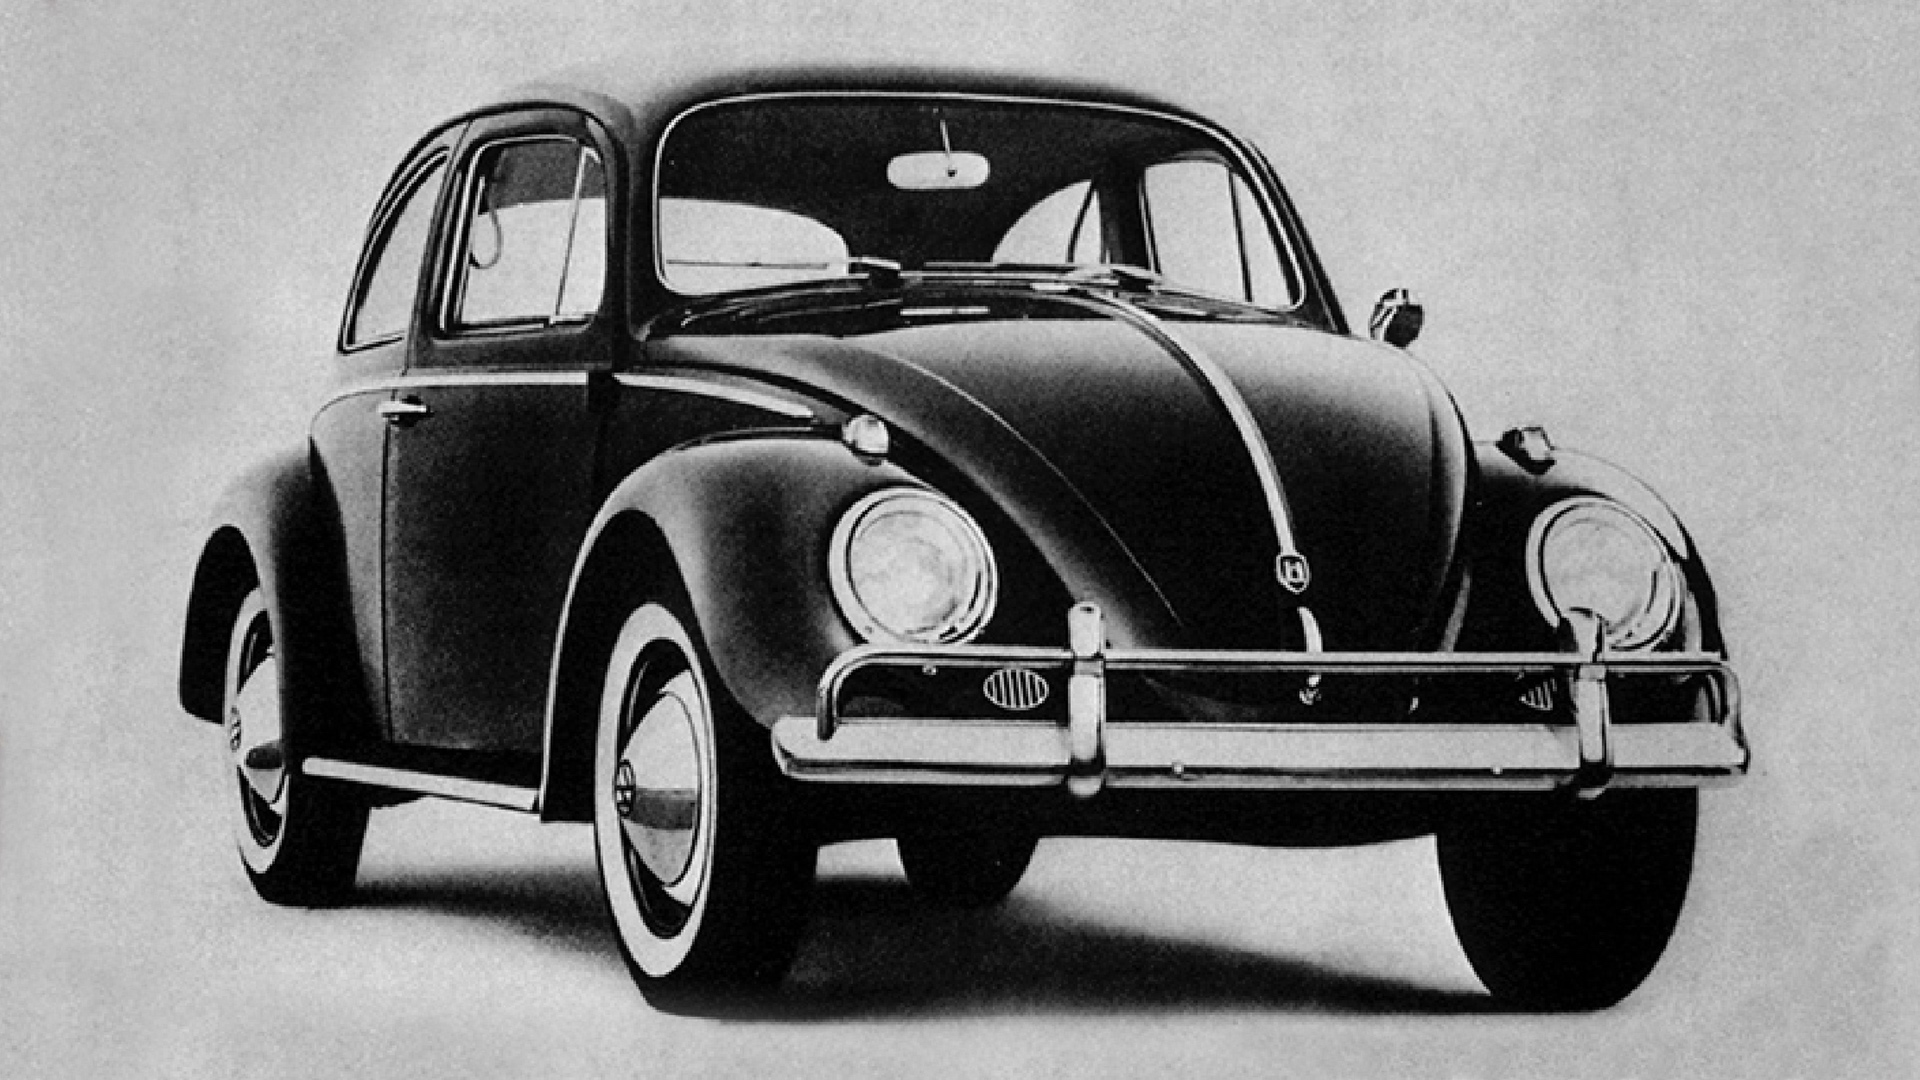 When Outsiders Became Insiders: The Volkswagen campaign of the 1960s